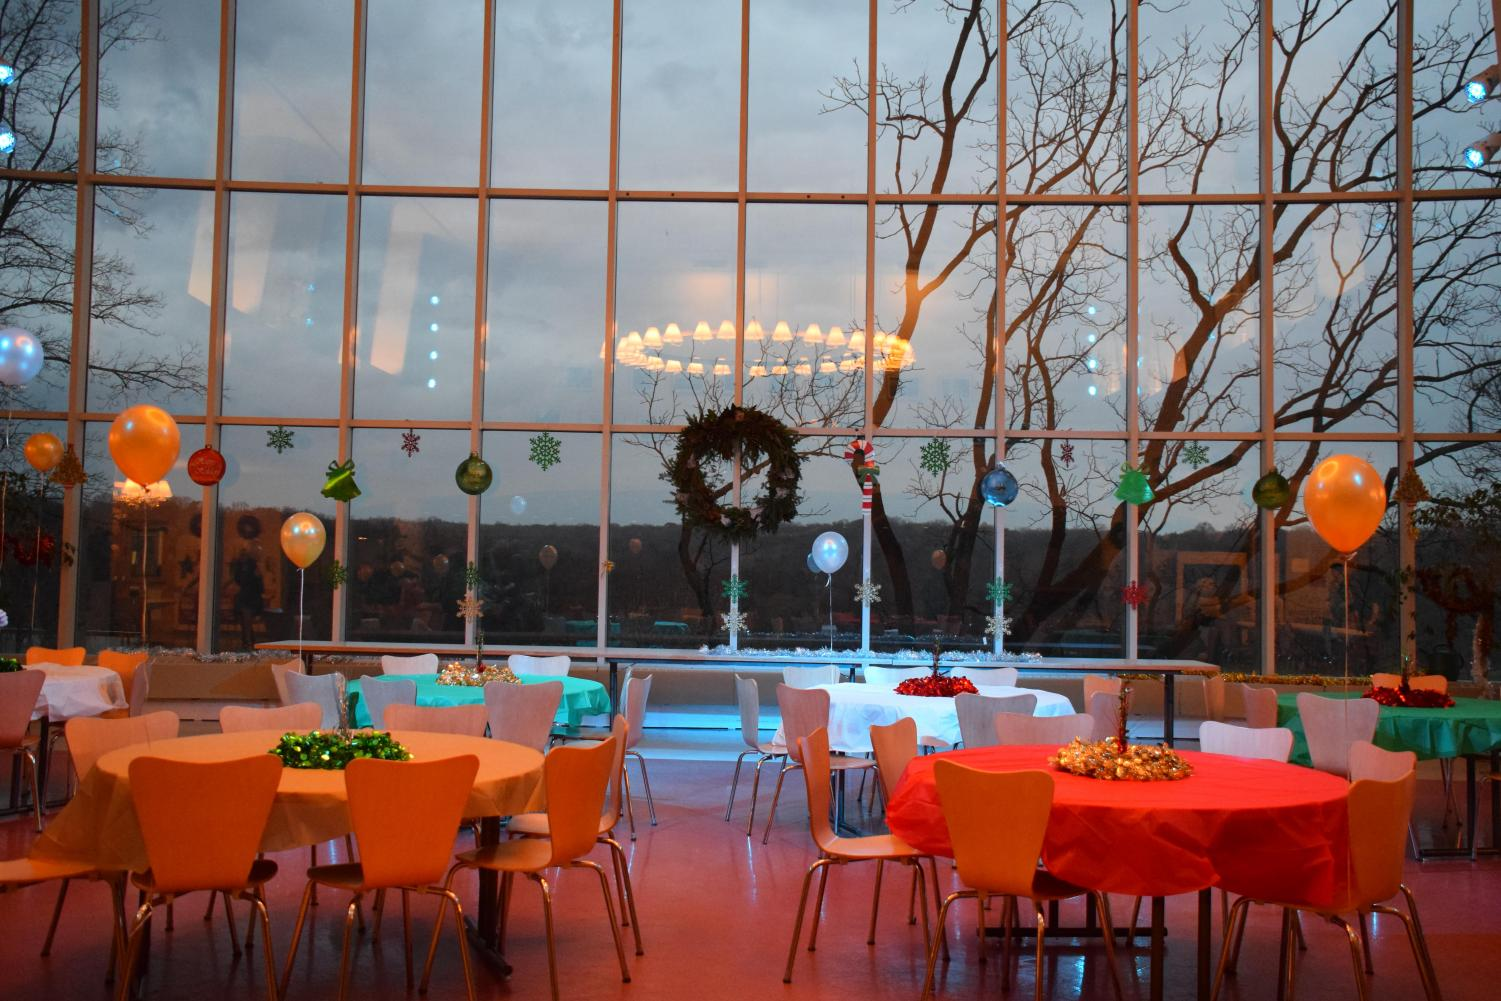 PARTY PLANNING: Fisher Dining Hall in advance of the evenings festivities